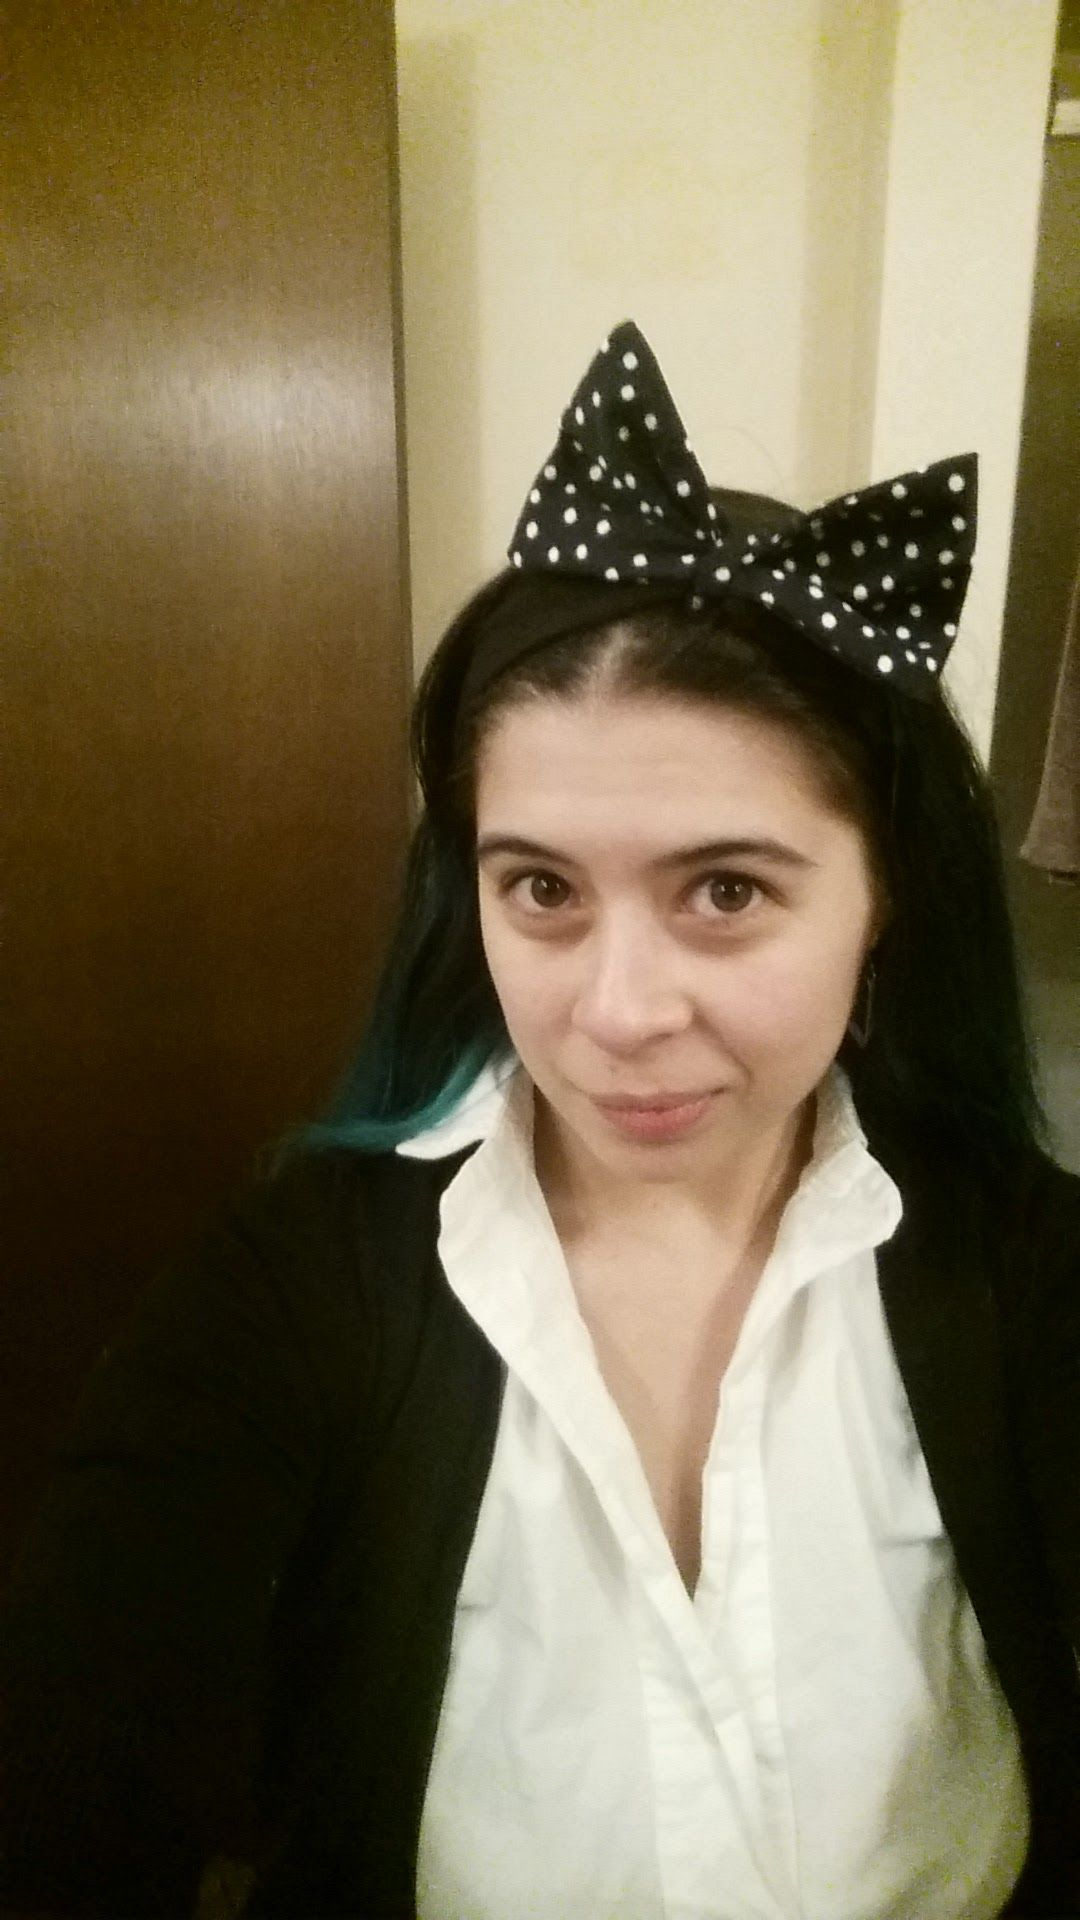 [FO - Sew Not Perfect Knit Bow Headband] I really wanted big bows to go see Sailor Moon R in the theater tonight! #sewing #crafts #handmade #quilting #fabric #vintage #DIY #craft #knitting